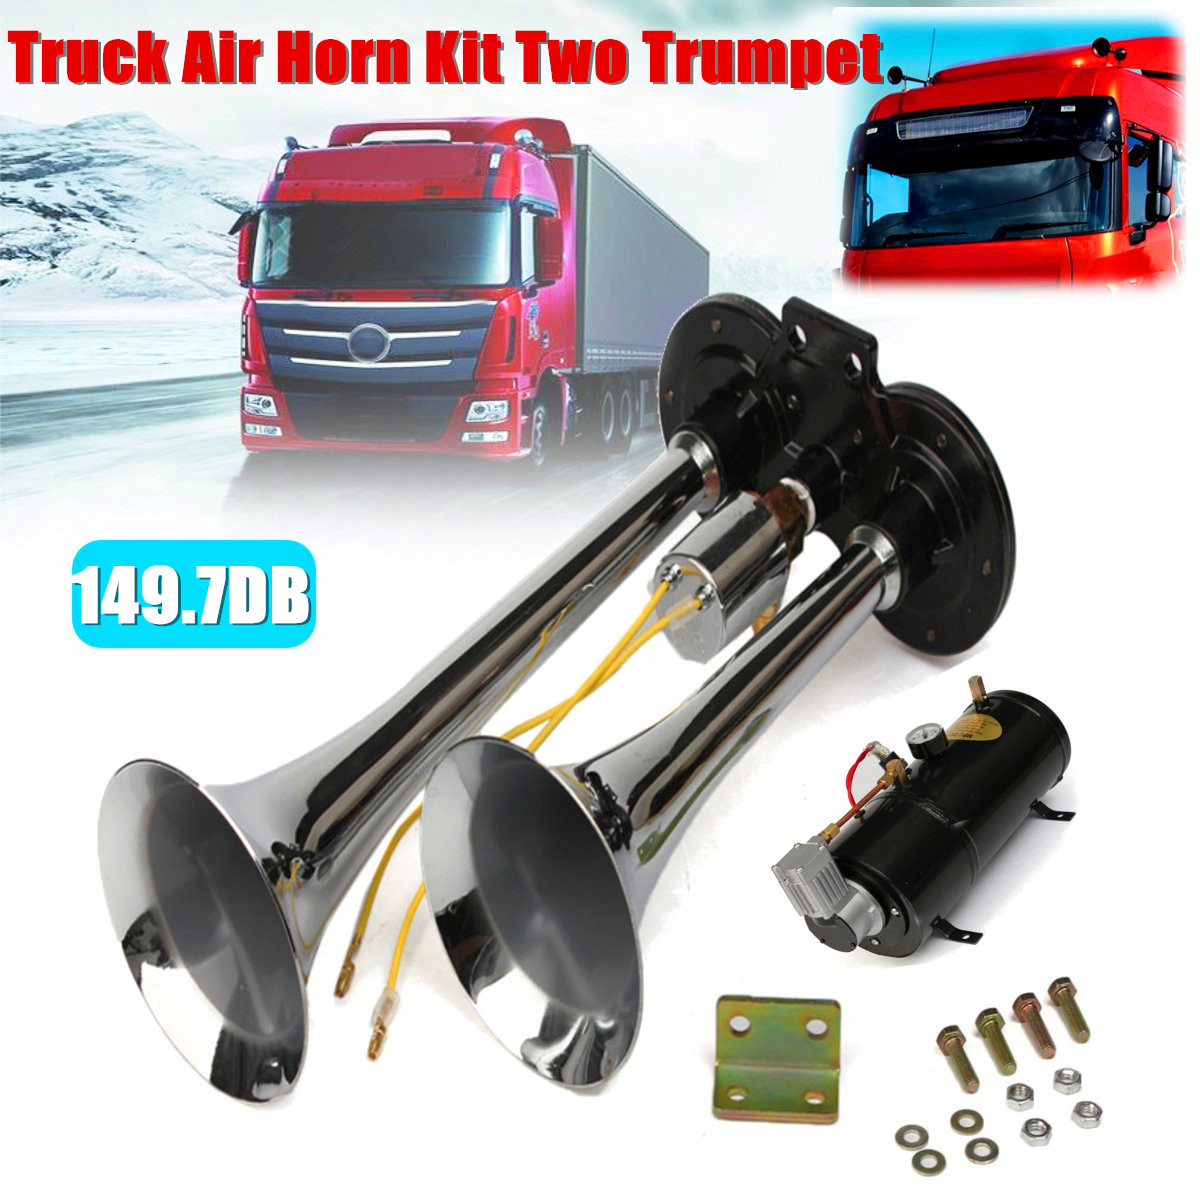 купить Truck Air Horn Kit Two Trumpet 110 PSI 12V DC Compressor Pressure Gauge 12ft Tubing 149.7 db по цене 9295.94 рублей